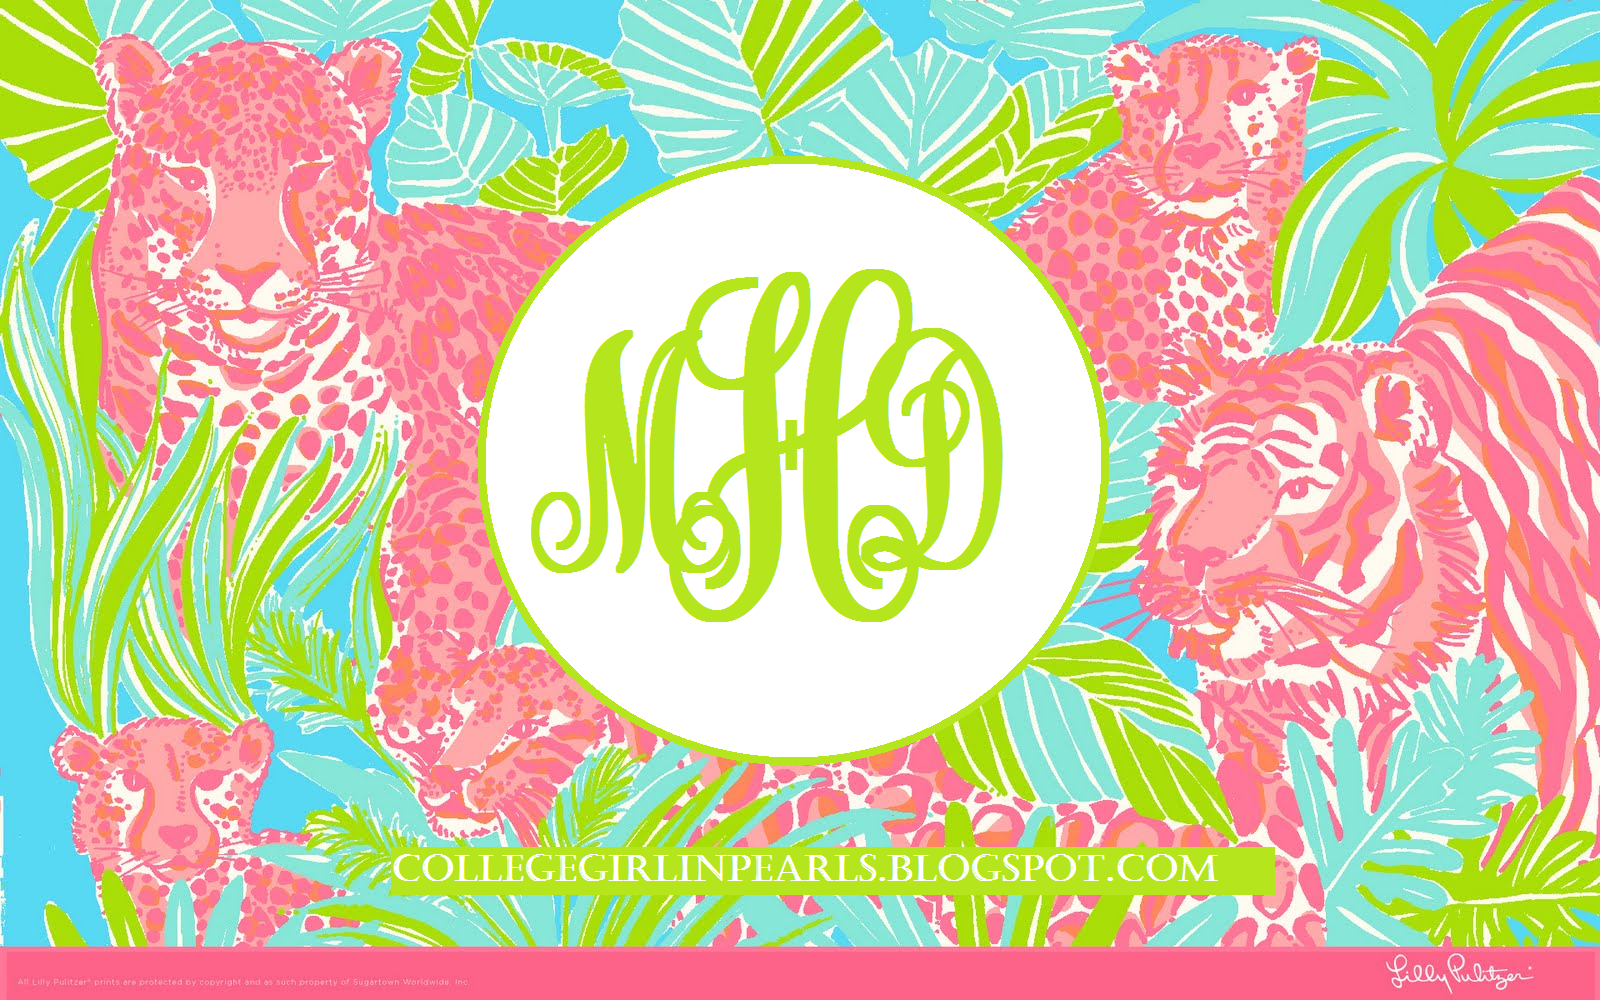 Lilly Pulitzer Quotes | Lilly Pulitzer Desktop Wallpaper With Quotes 30353 Bitnote